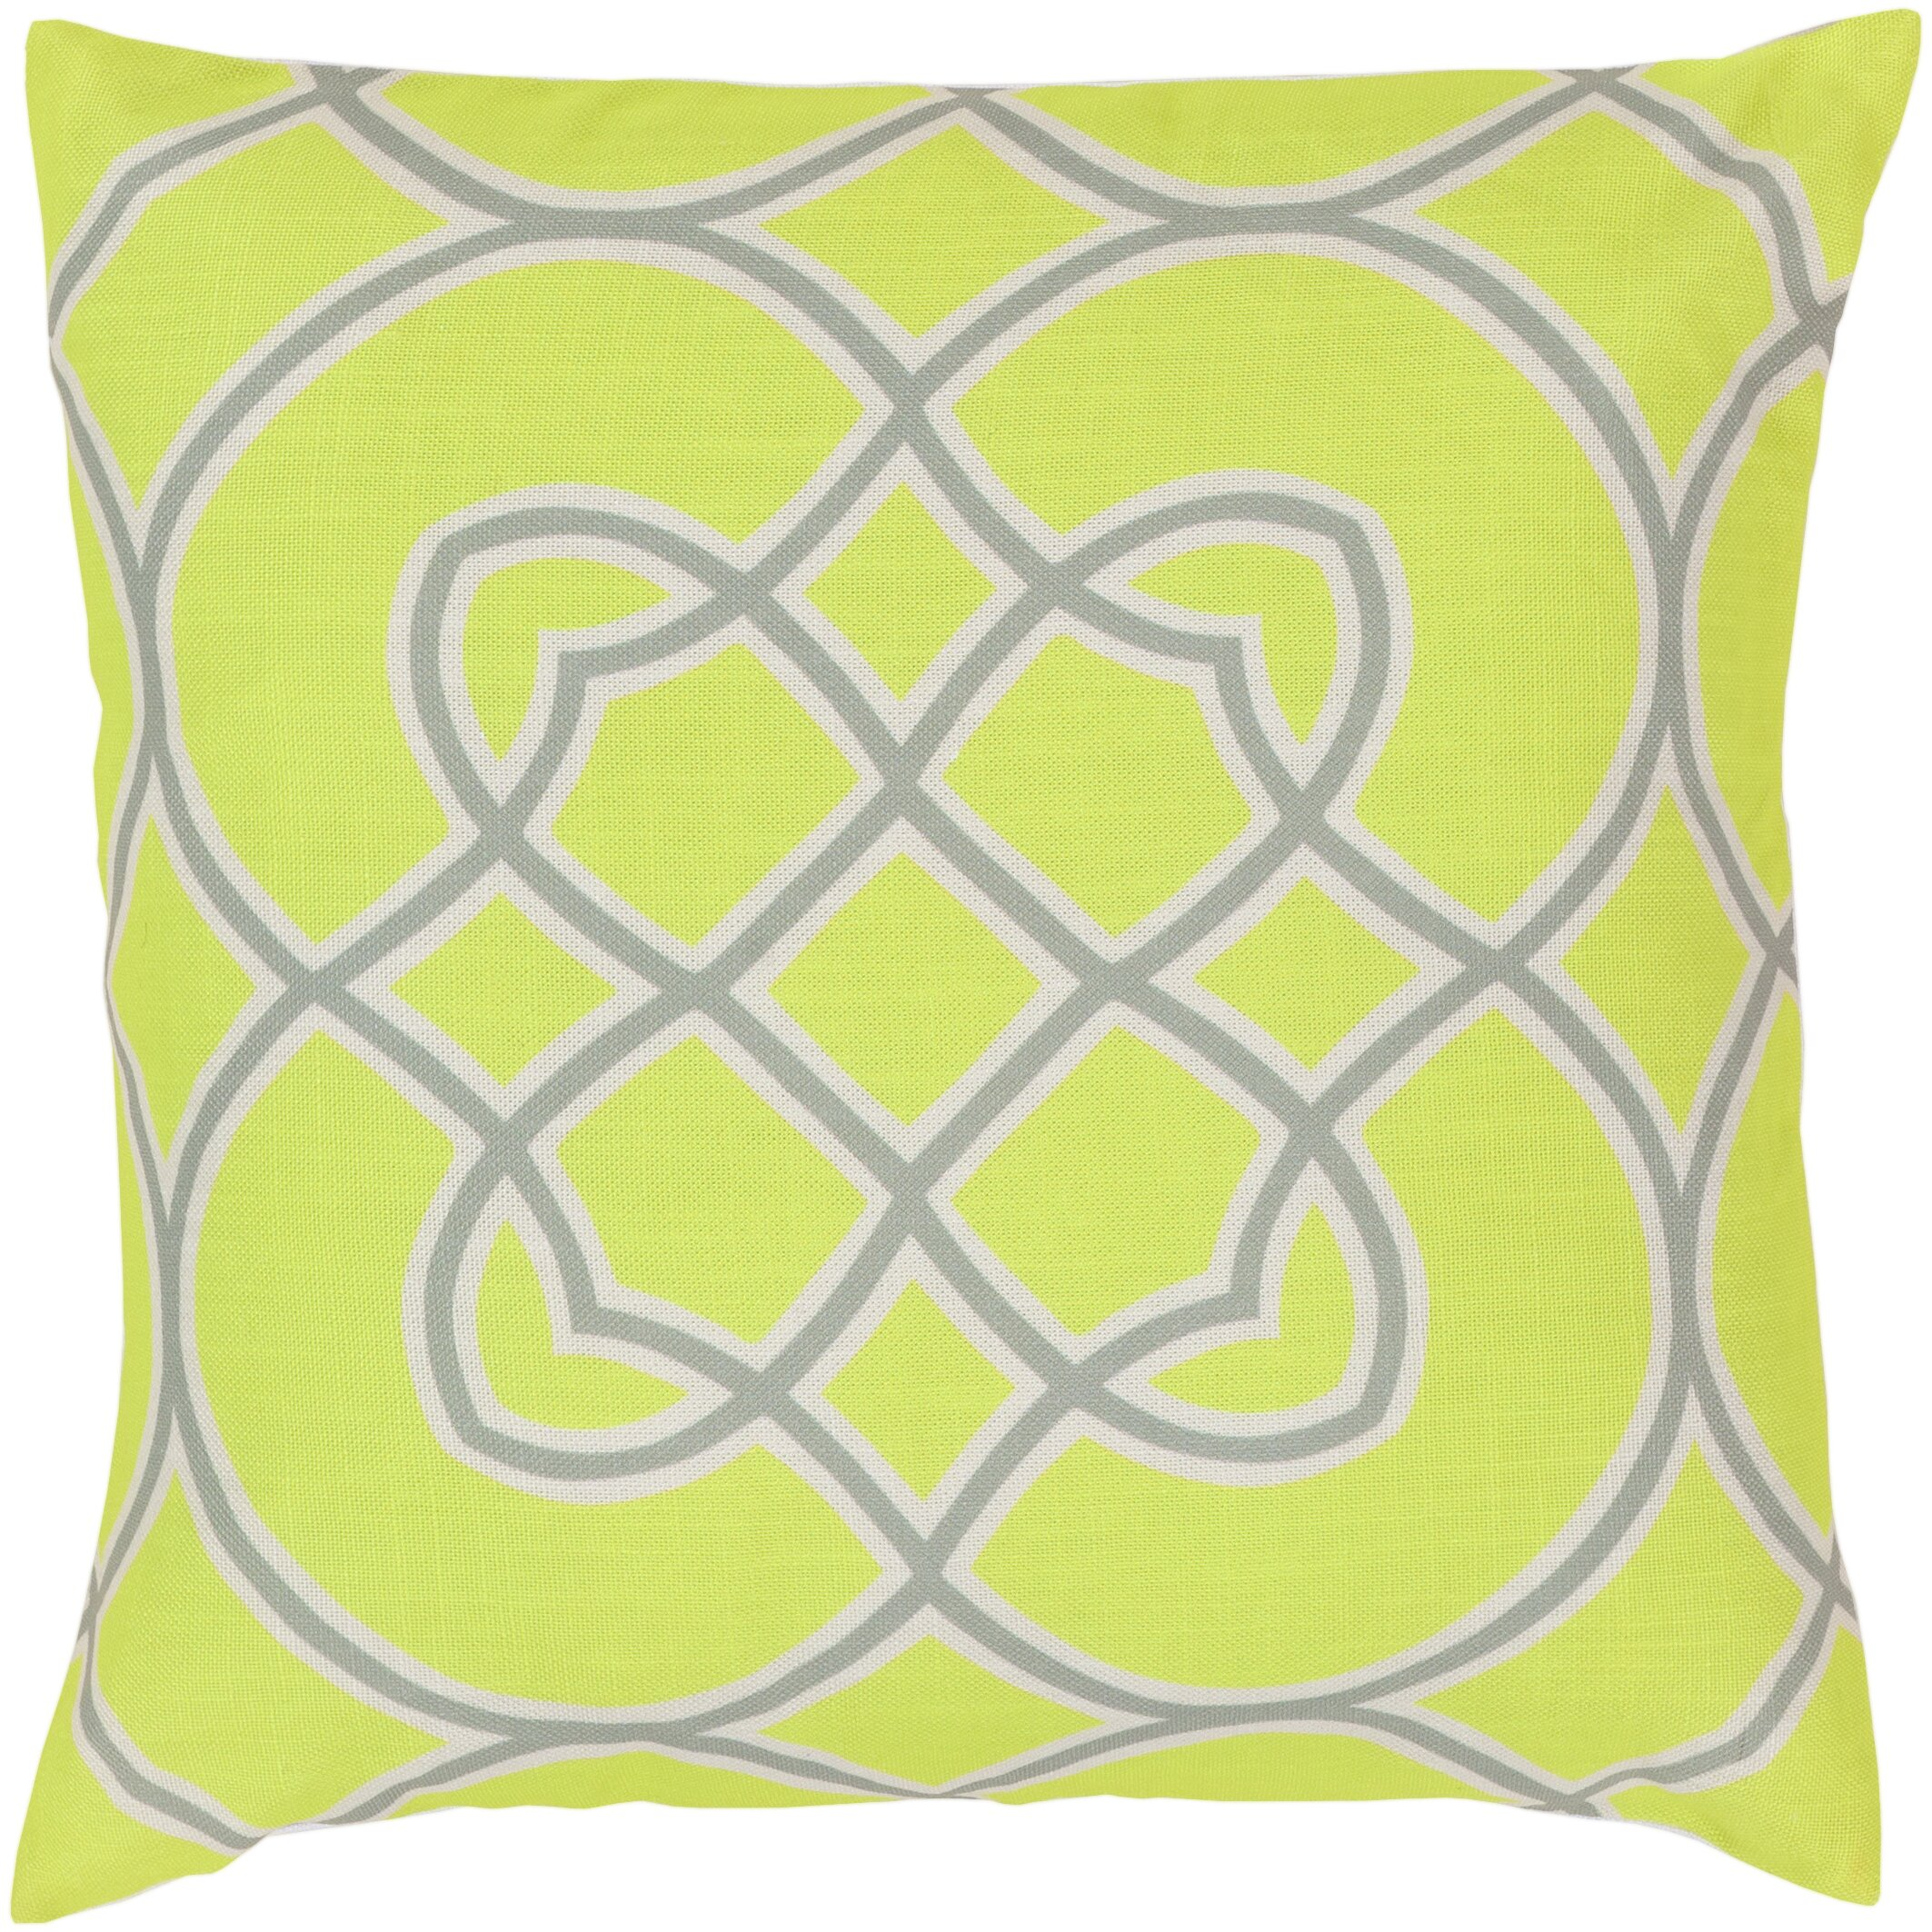 Throw Pillow Gallery : Varick Gallery Stout Stay Connected Throw Pillow & Reviews Wayfair